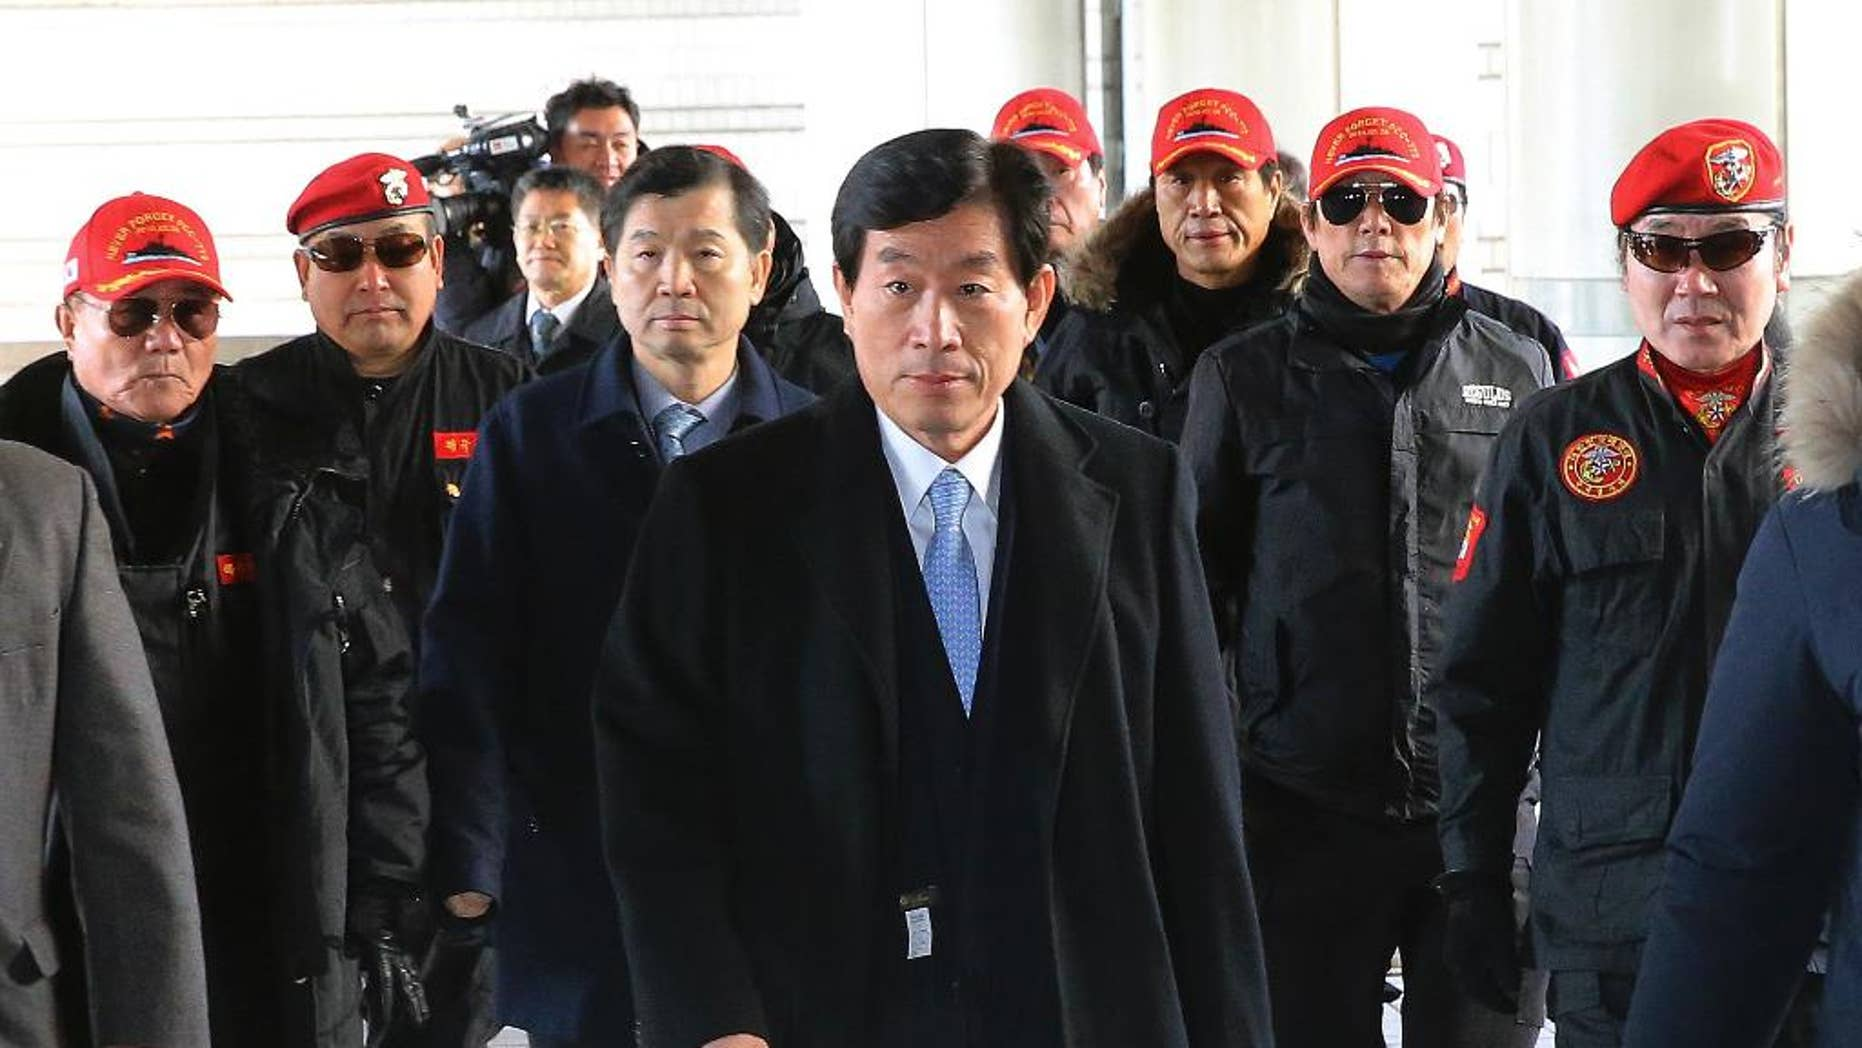 Former National Intelligence Service director Won Sei-hoon, center, arrives at the Seoul High Court in Seoul, South Korea, Monday, Feb. 9, 2015. Won headed to prison after being found guilty of ordering an illicit online campaign to support then-ruling party candidate and current President Park Geun-hye ahead of the 2012 presidential election. (AP Photo/Yonhap)  KOREA OUT